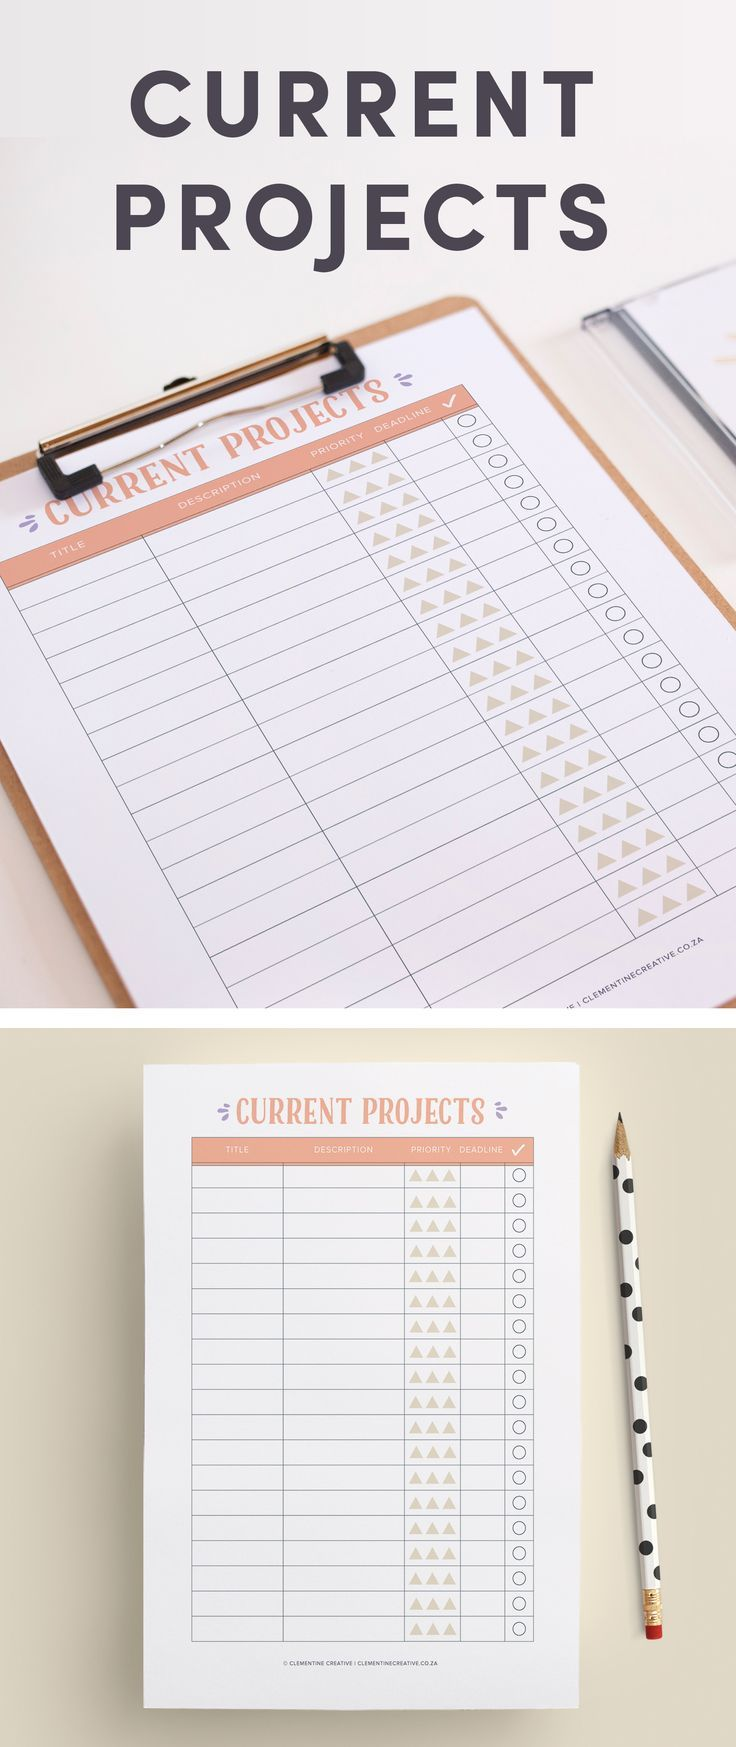 Current Projects Planner Insert  Planner Inserts Organizing And